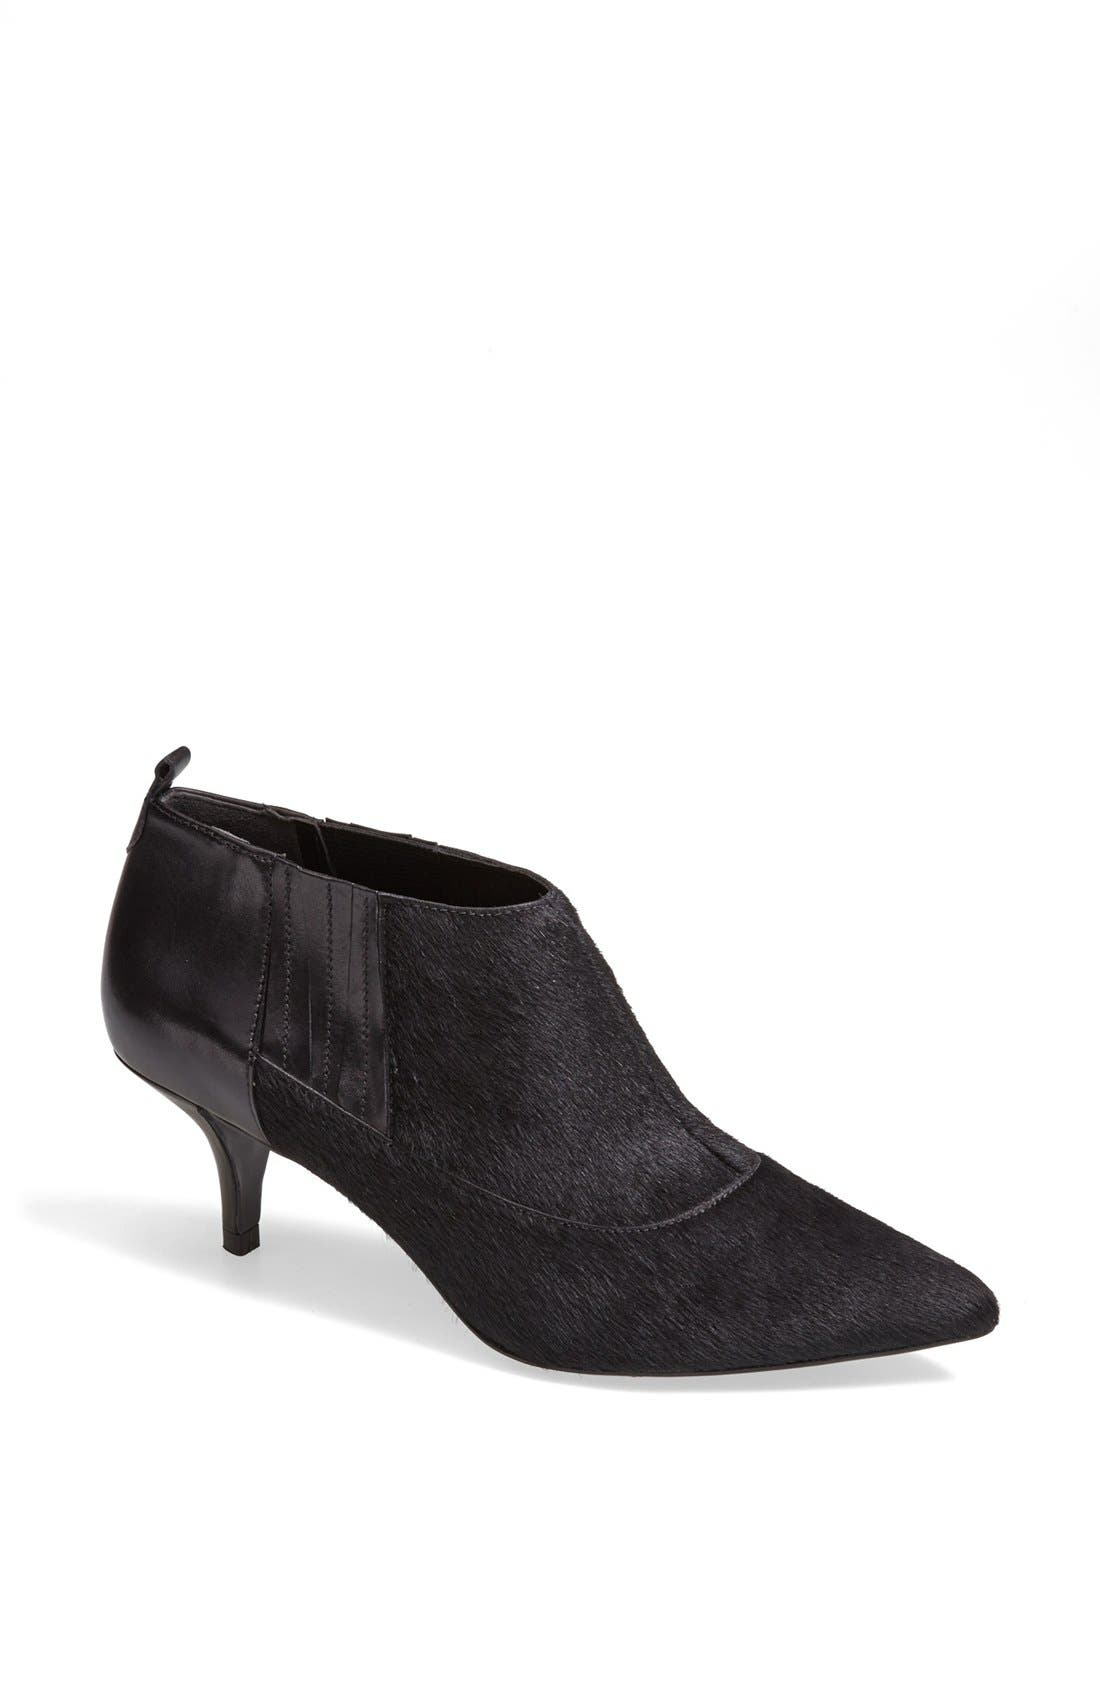 Main Image - Kenneth Cole 'Prince' Bootie